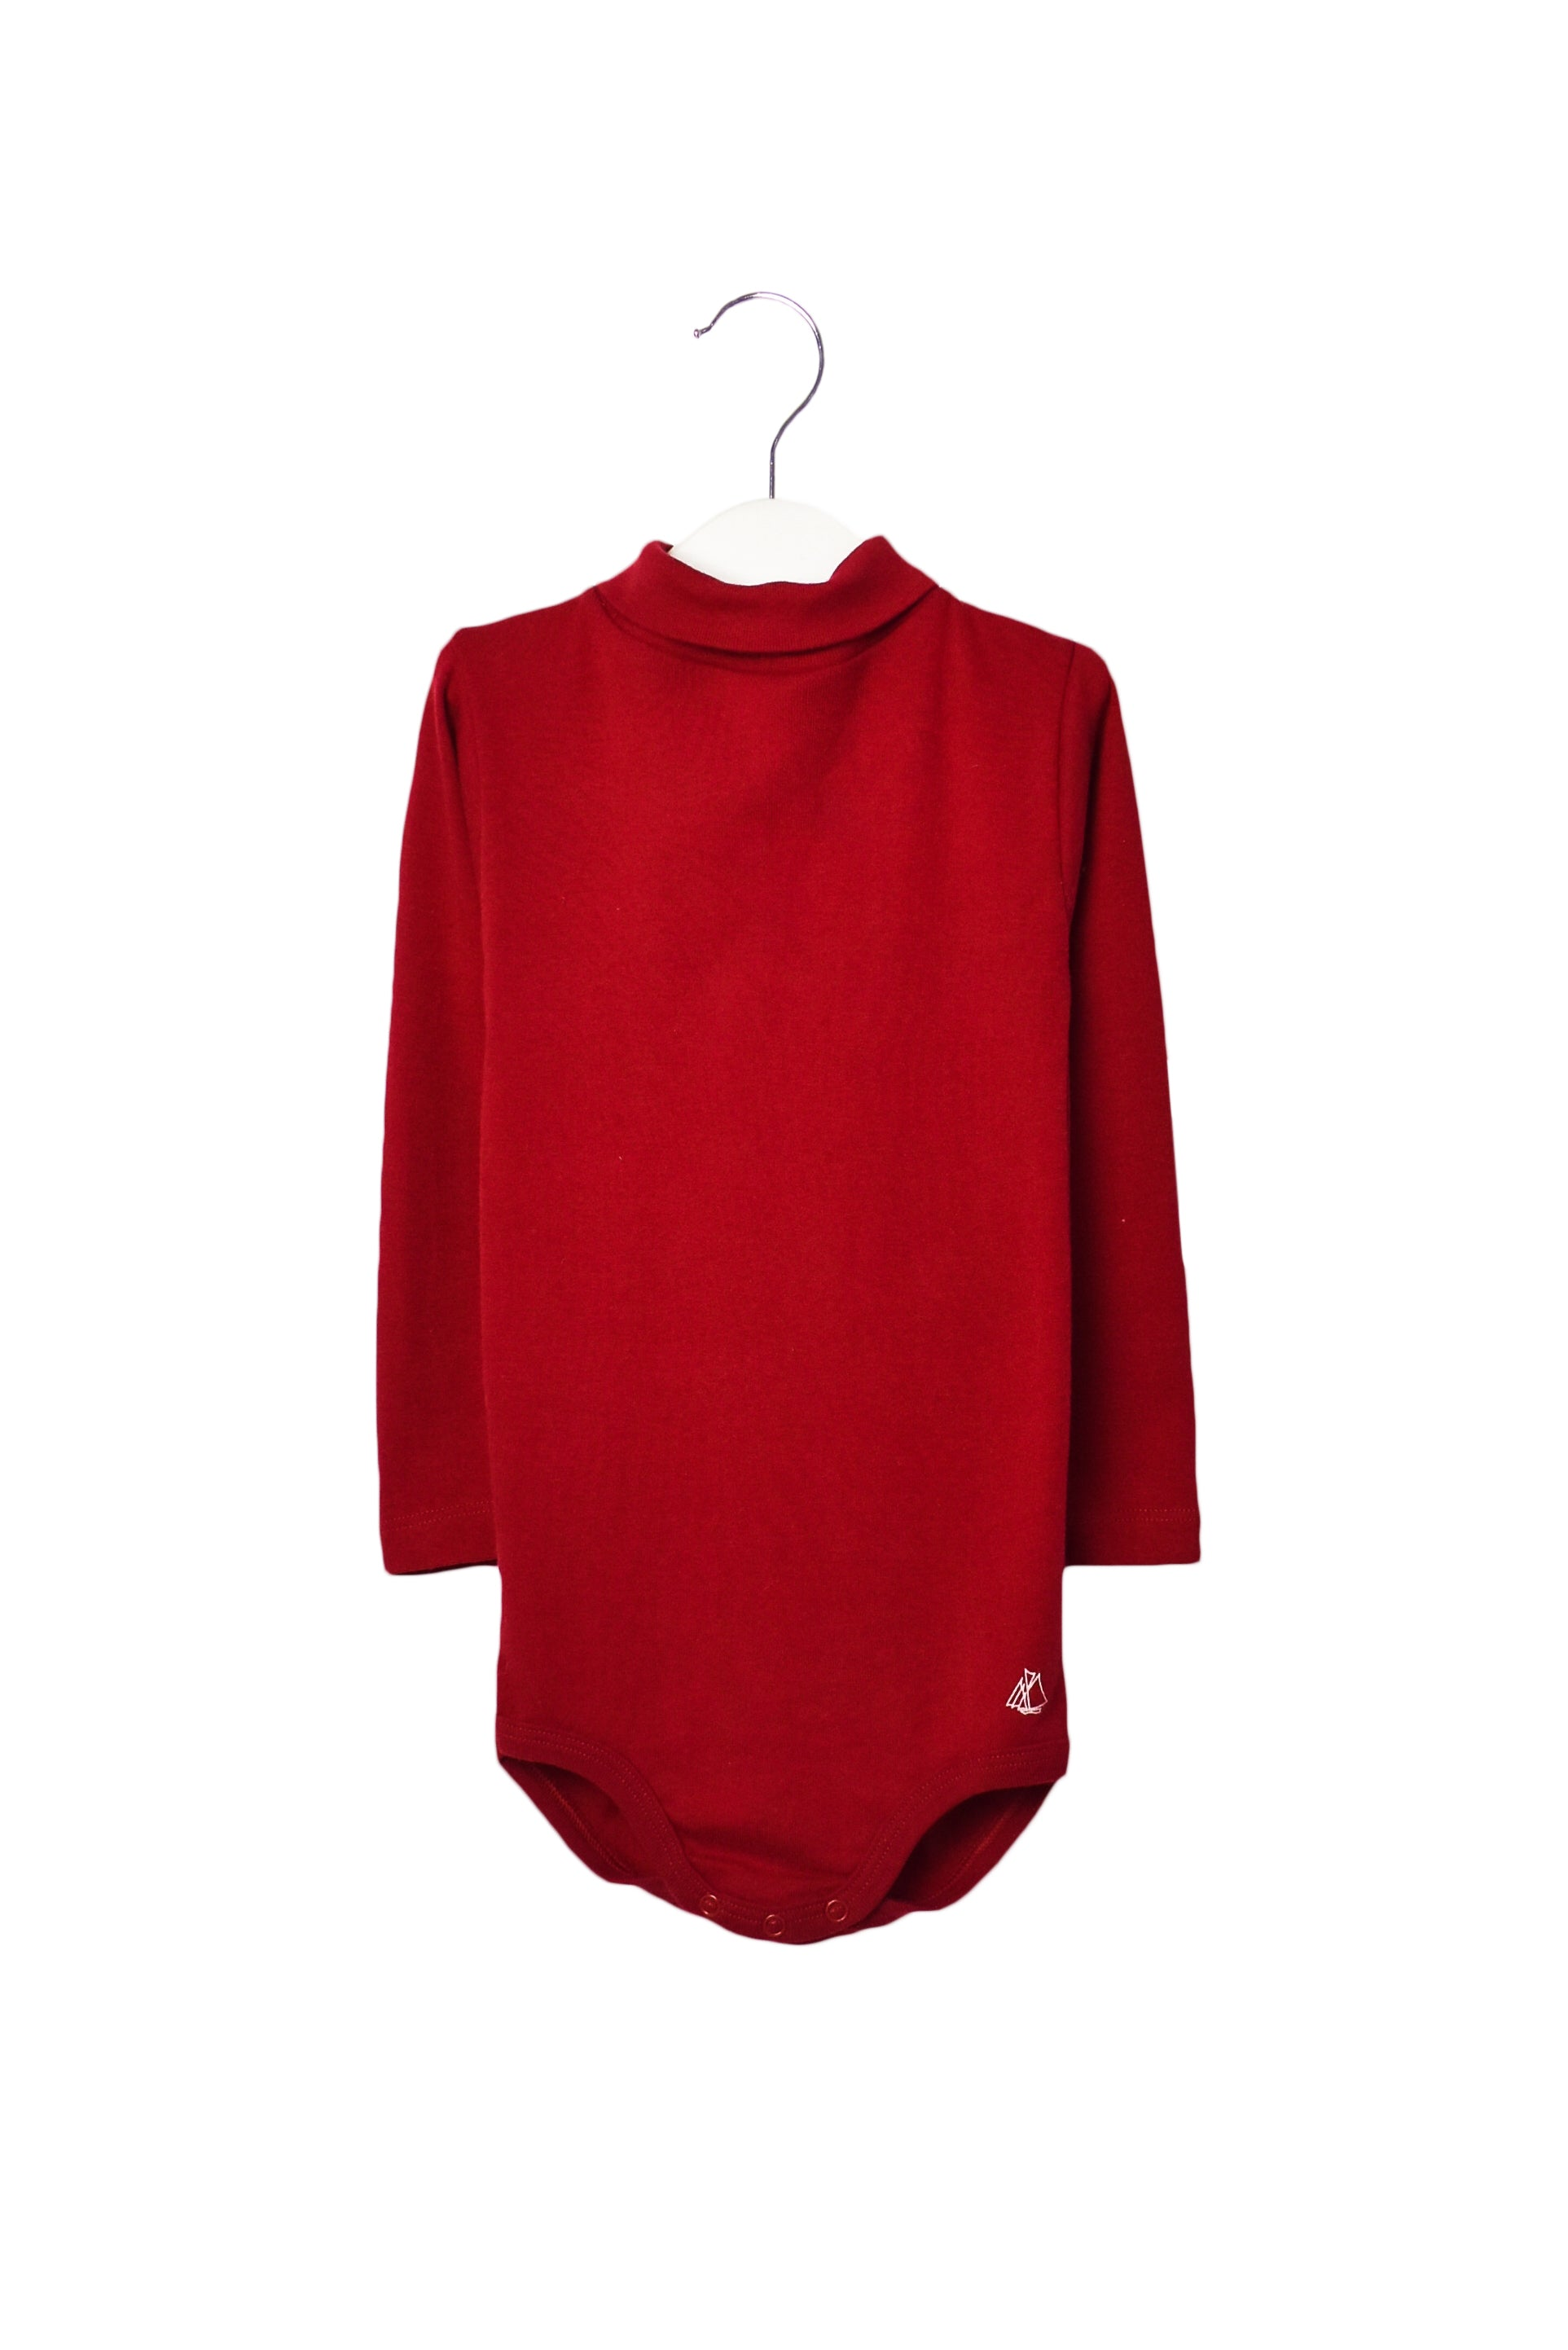 10006613 Petit Bateau Kids~Bodysuit 24M at Retykle